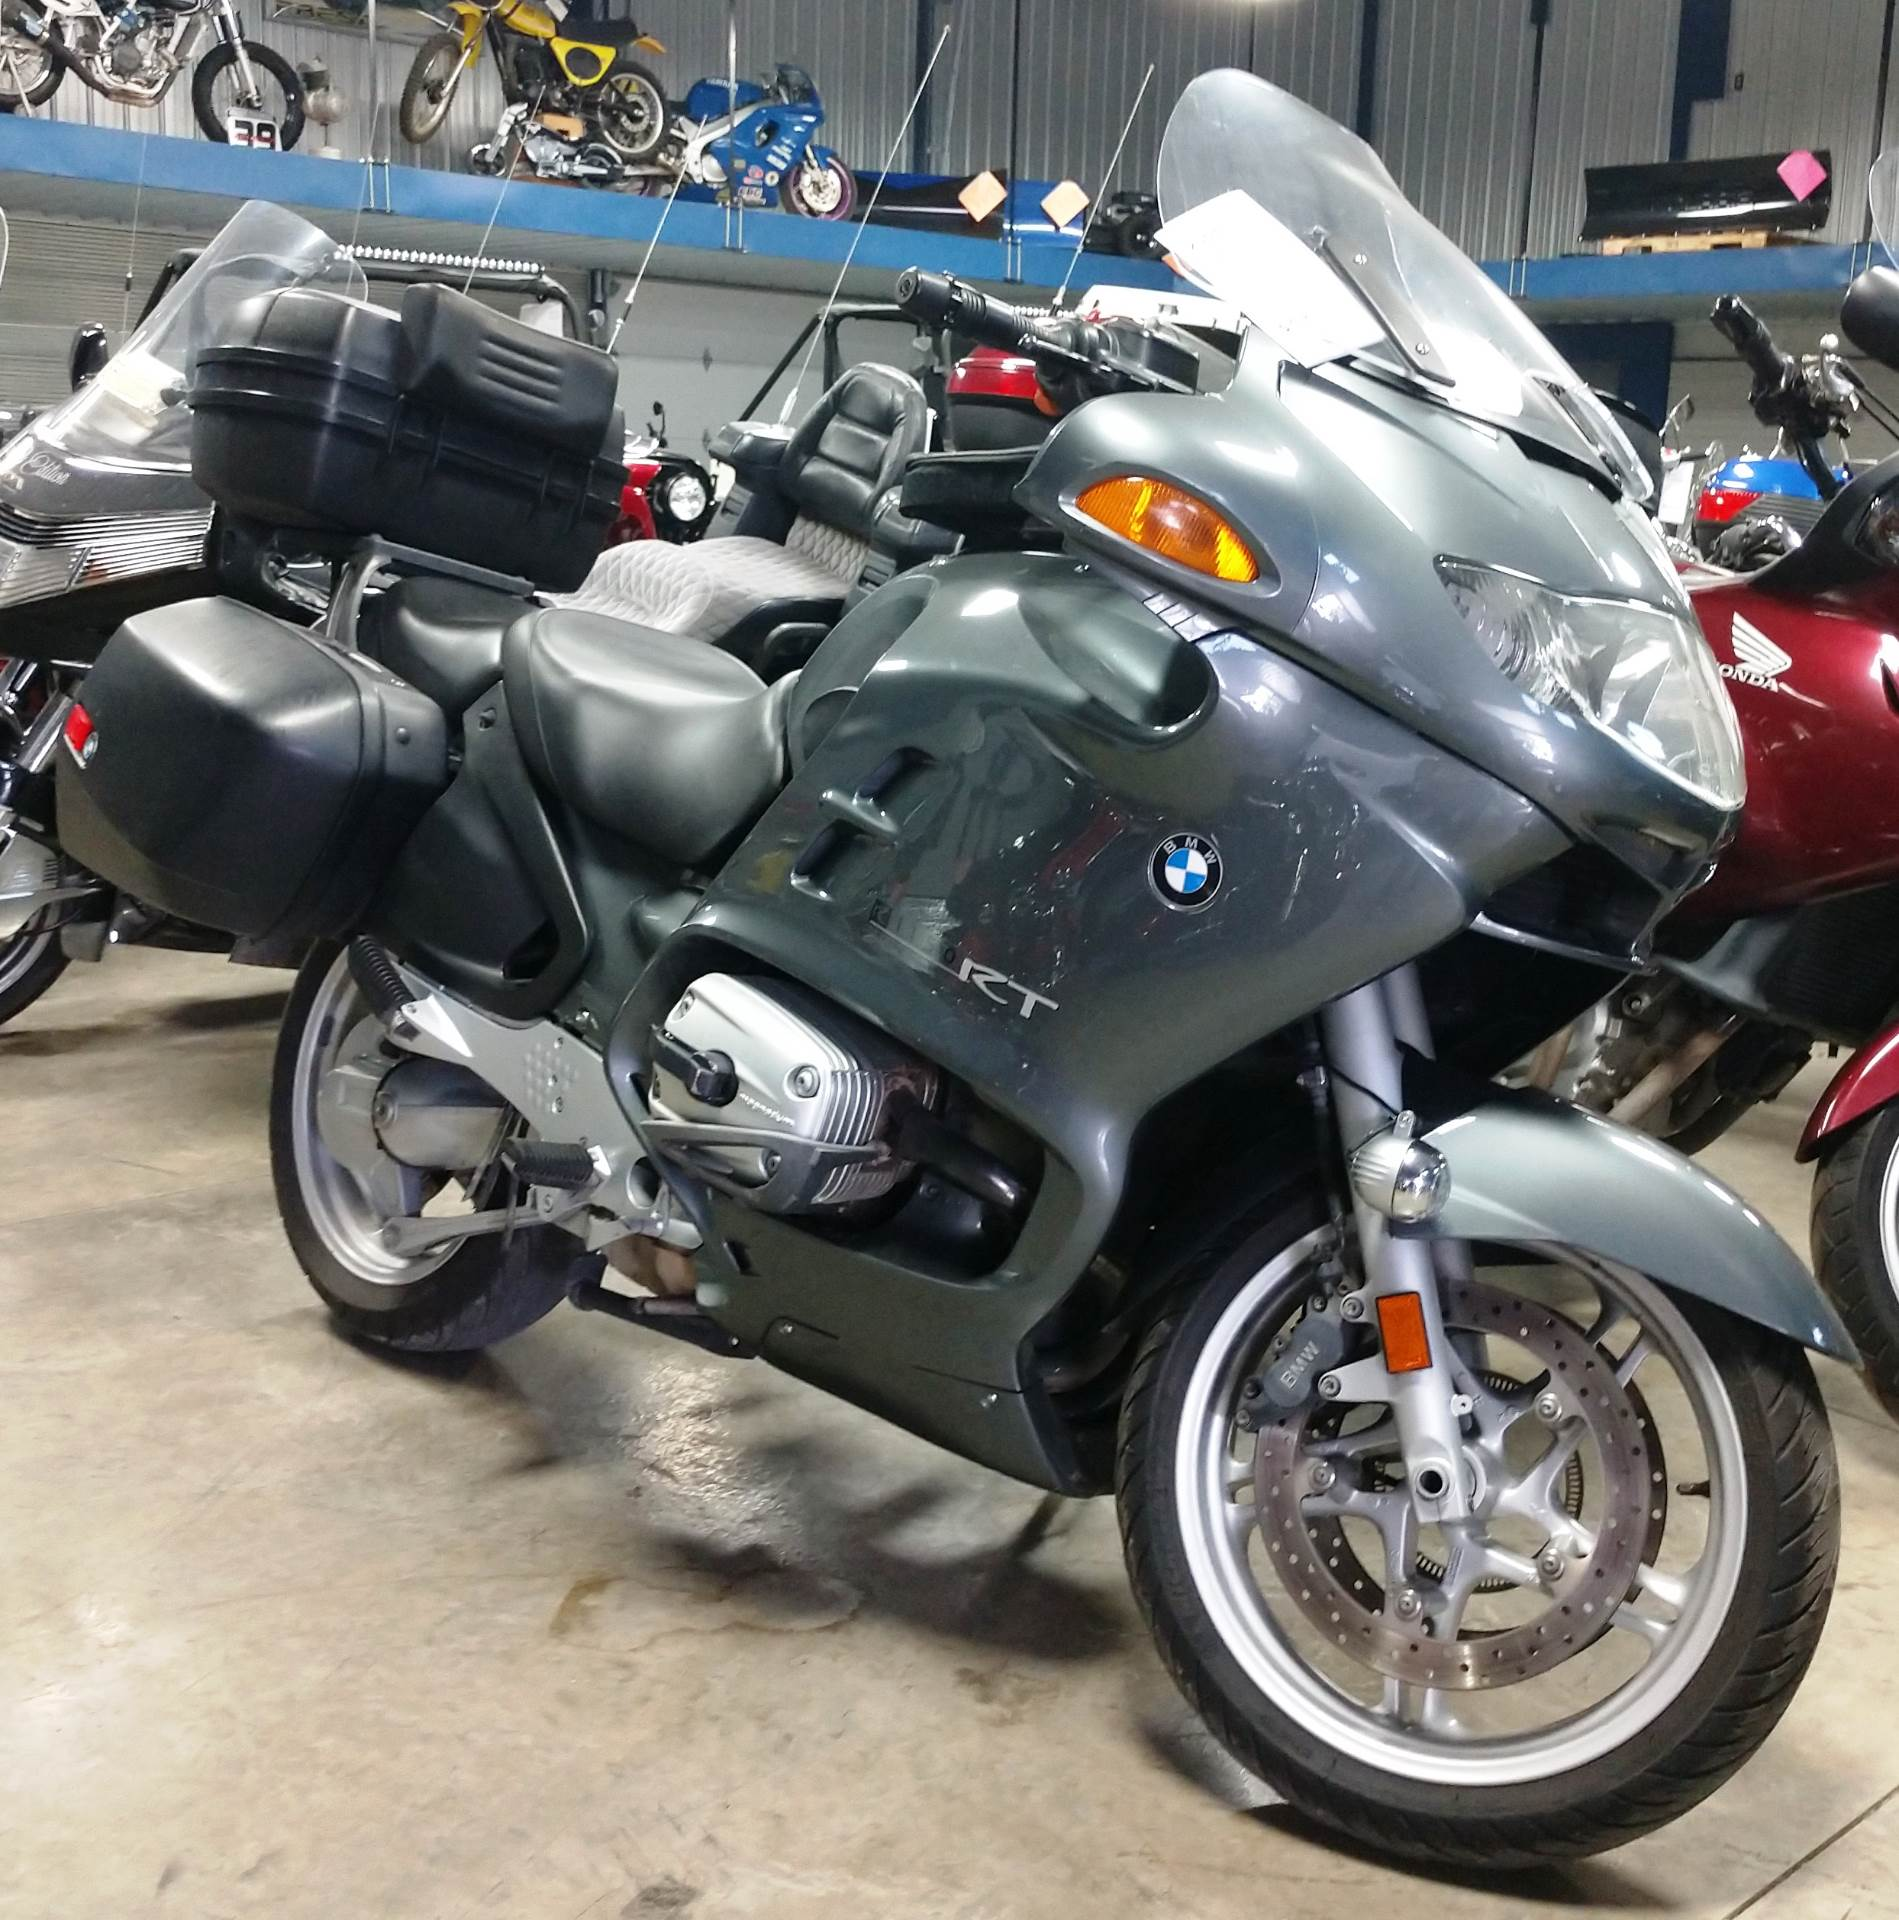 2004 BMW R 1150 RT (ABS) in Ottumwa, Iowa - Photo 1